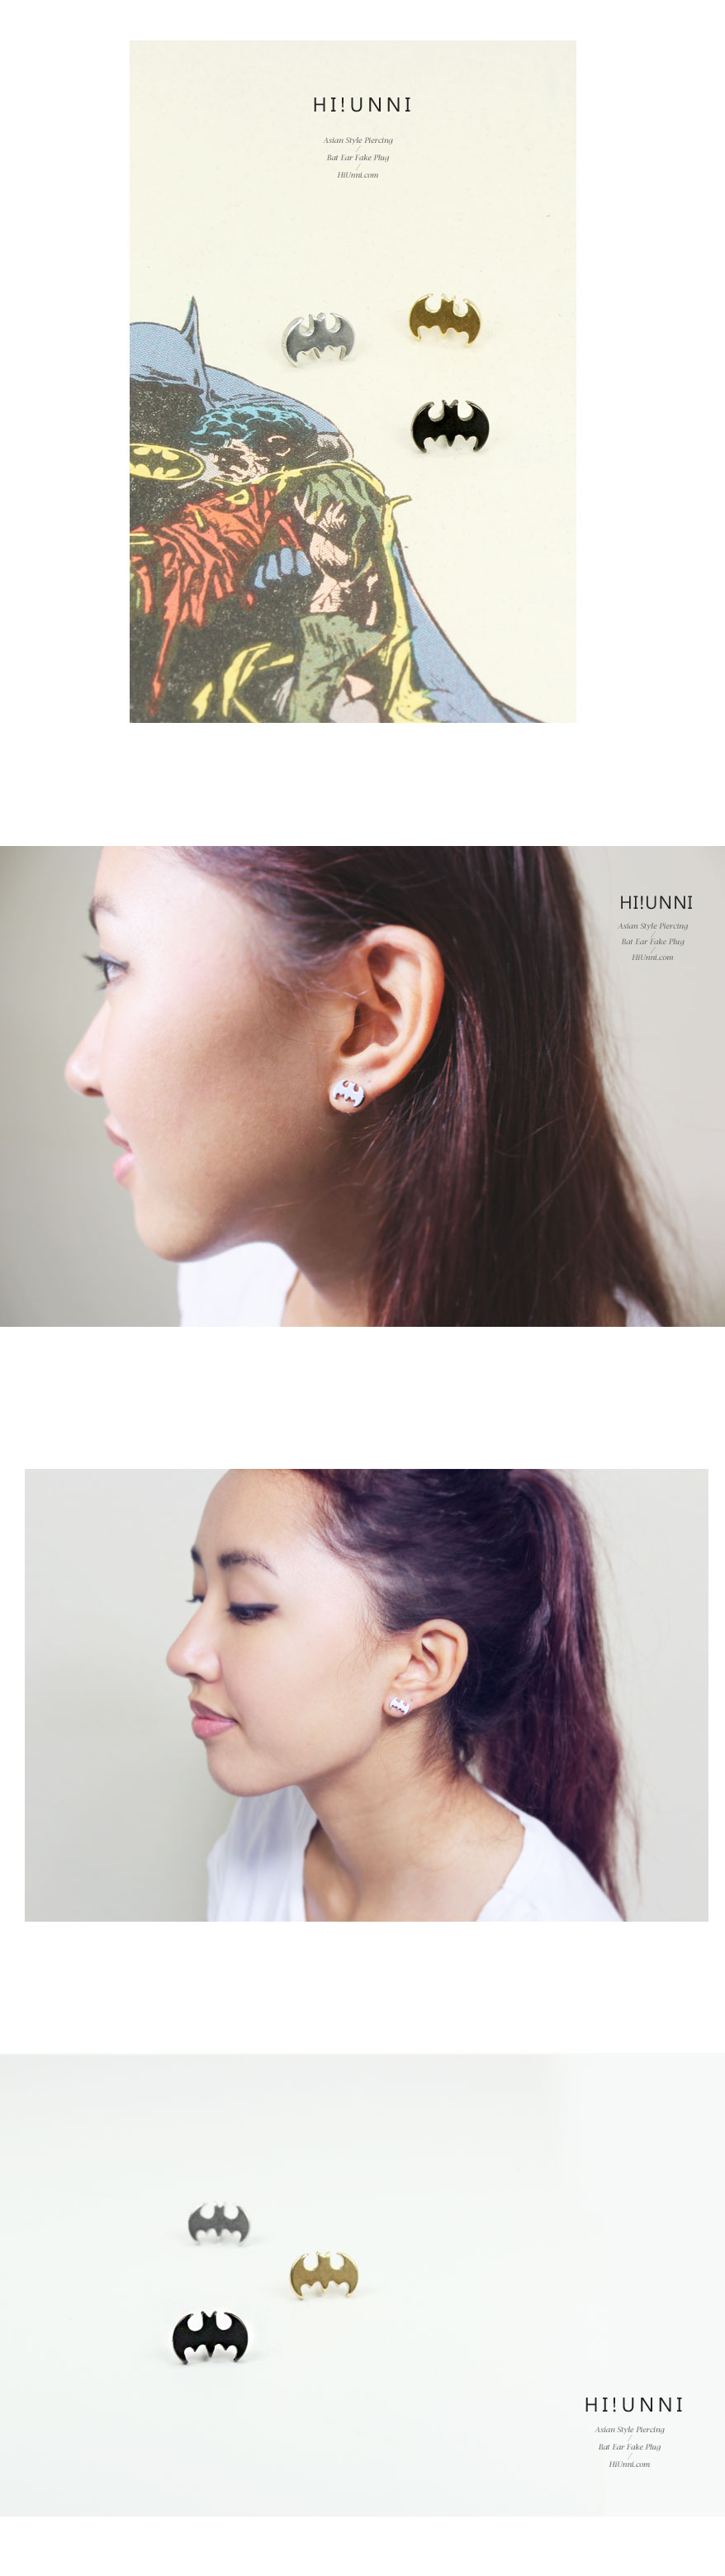 thumb.jpear_studs_16g_316l_piercing_Cartilage_korean_asian_style_barbell_cheater_fake_plug_bat_5